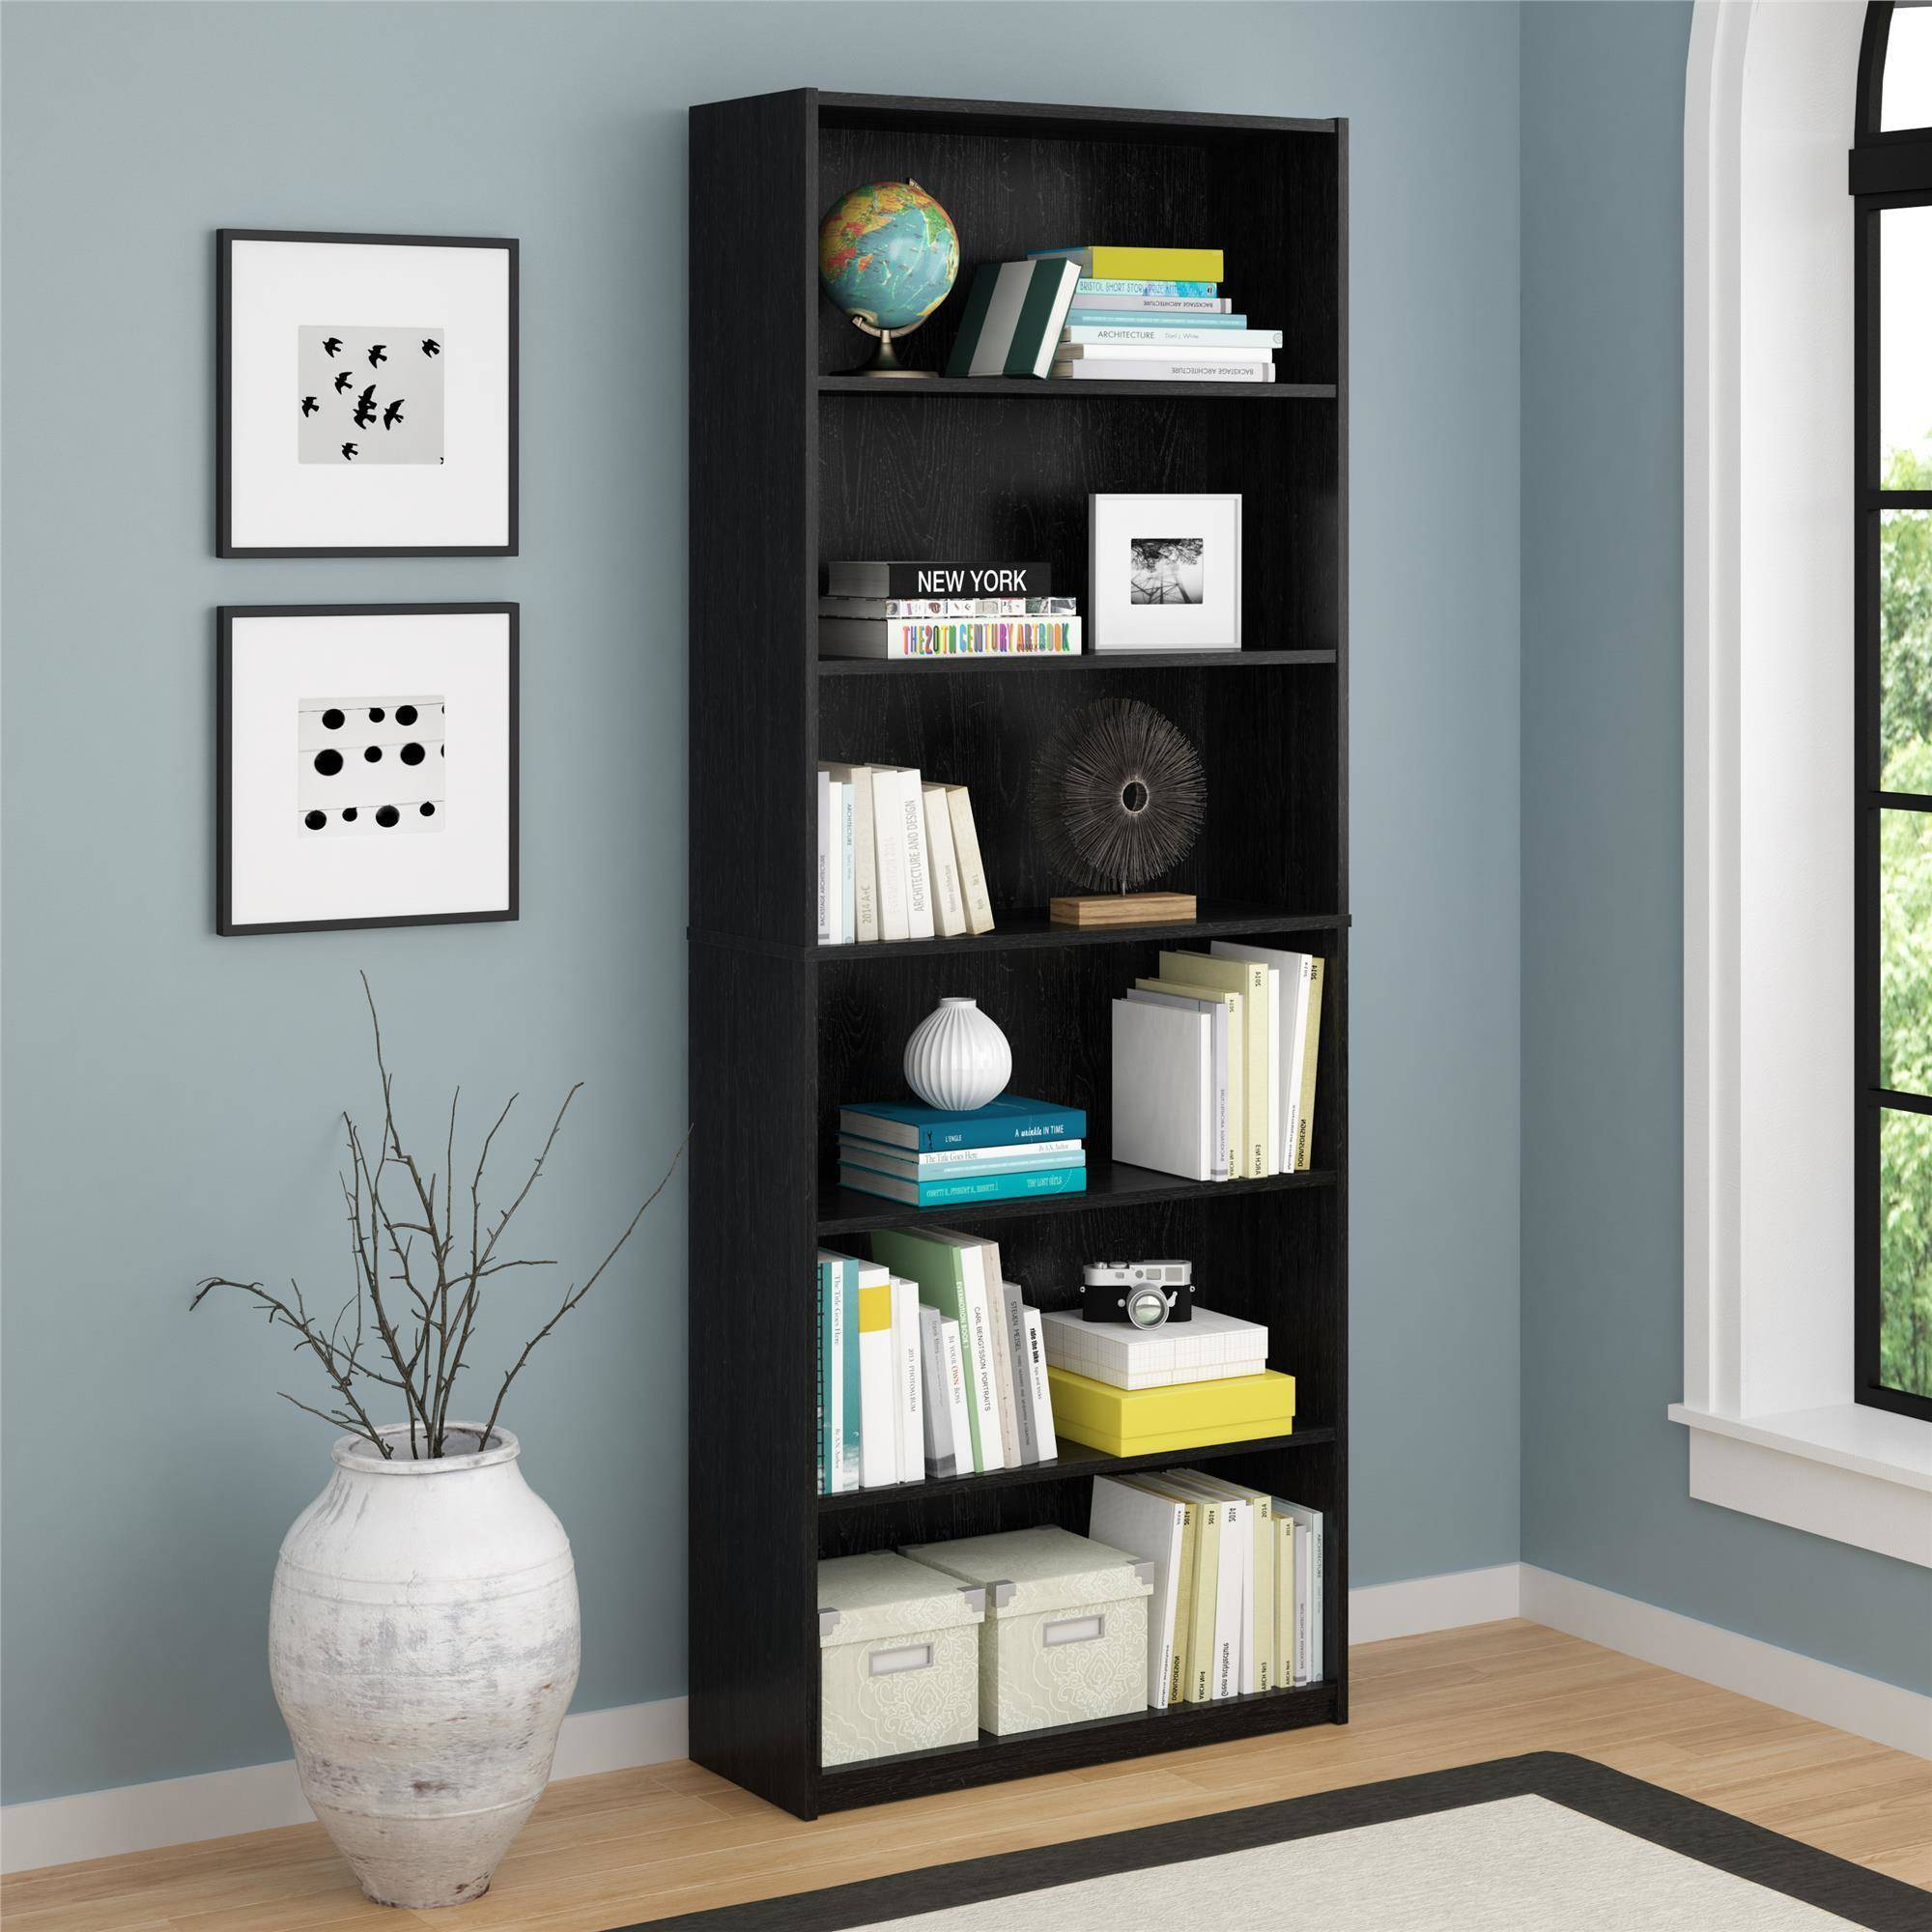 storage shelving cube specifics shelf wooden shelves tier item bookcase display itm wood